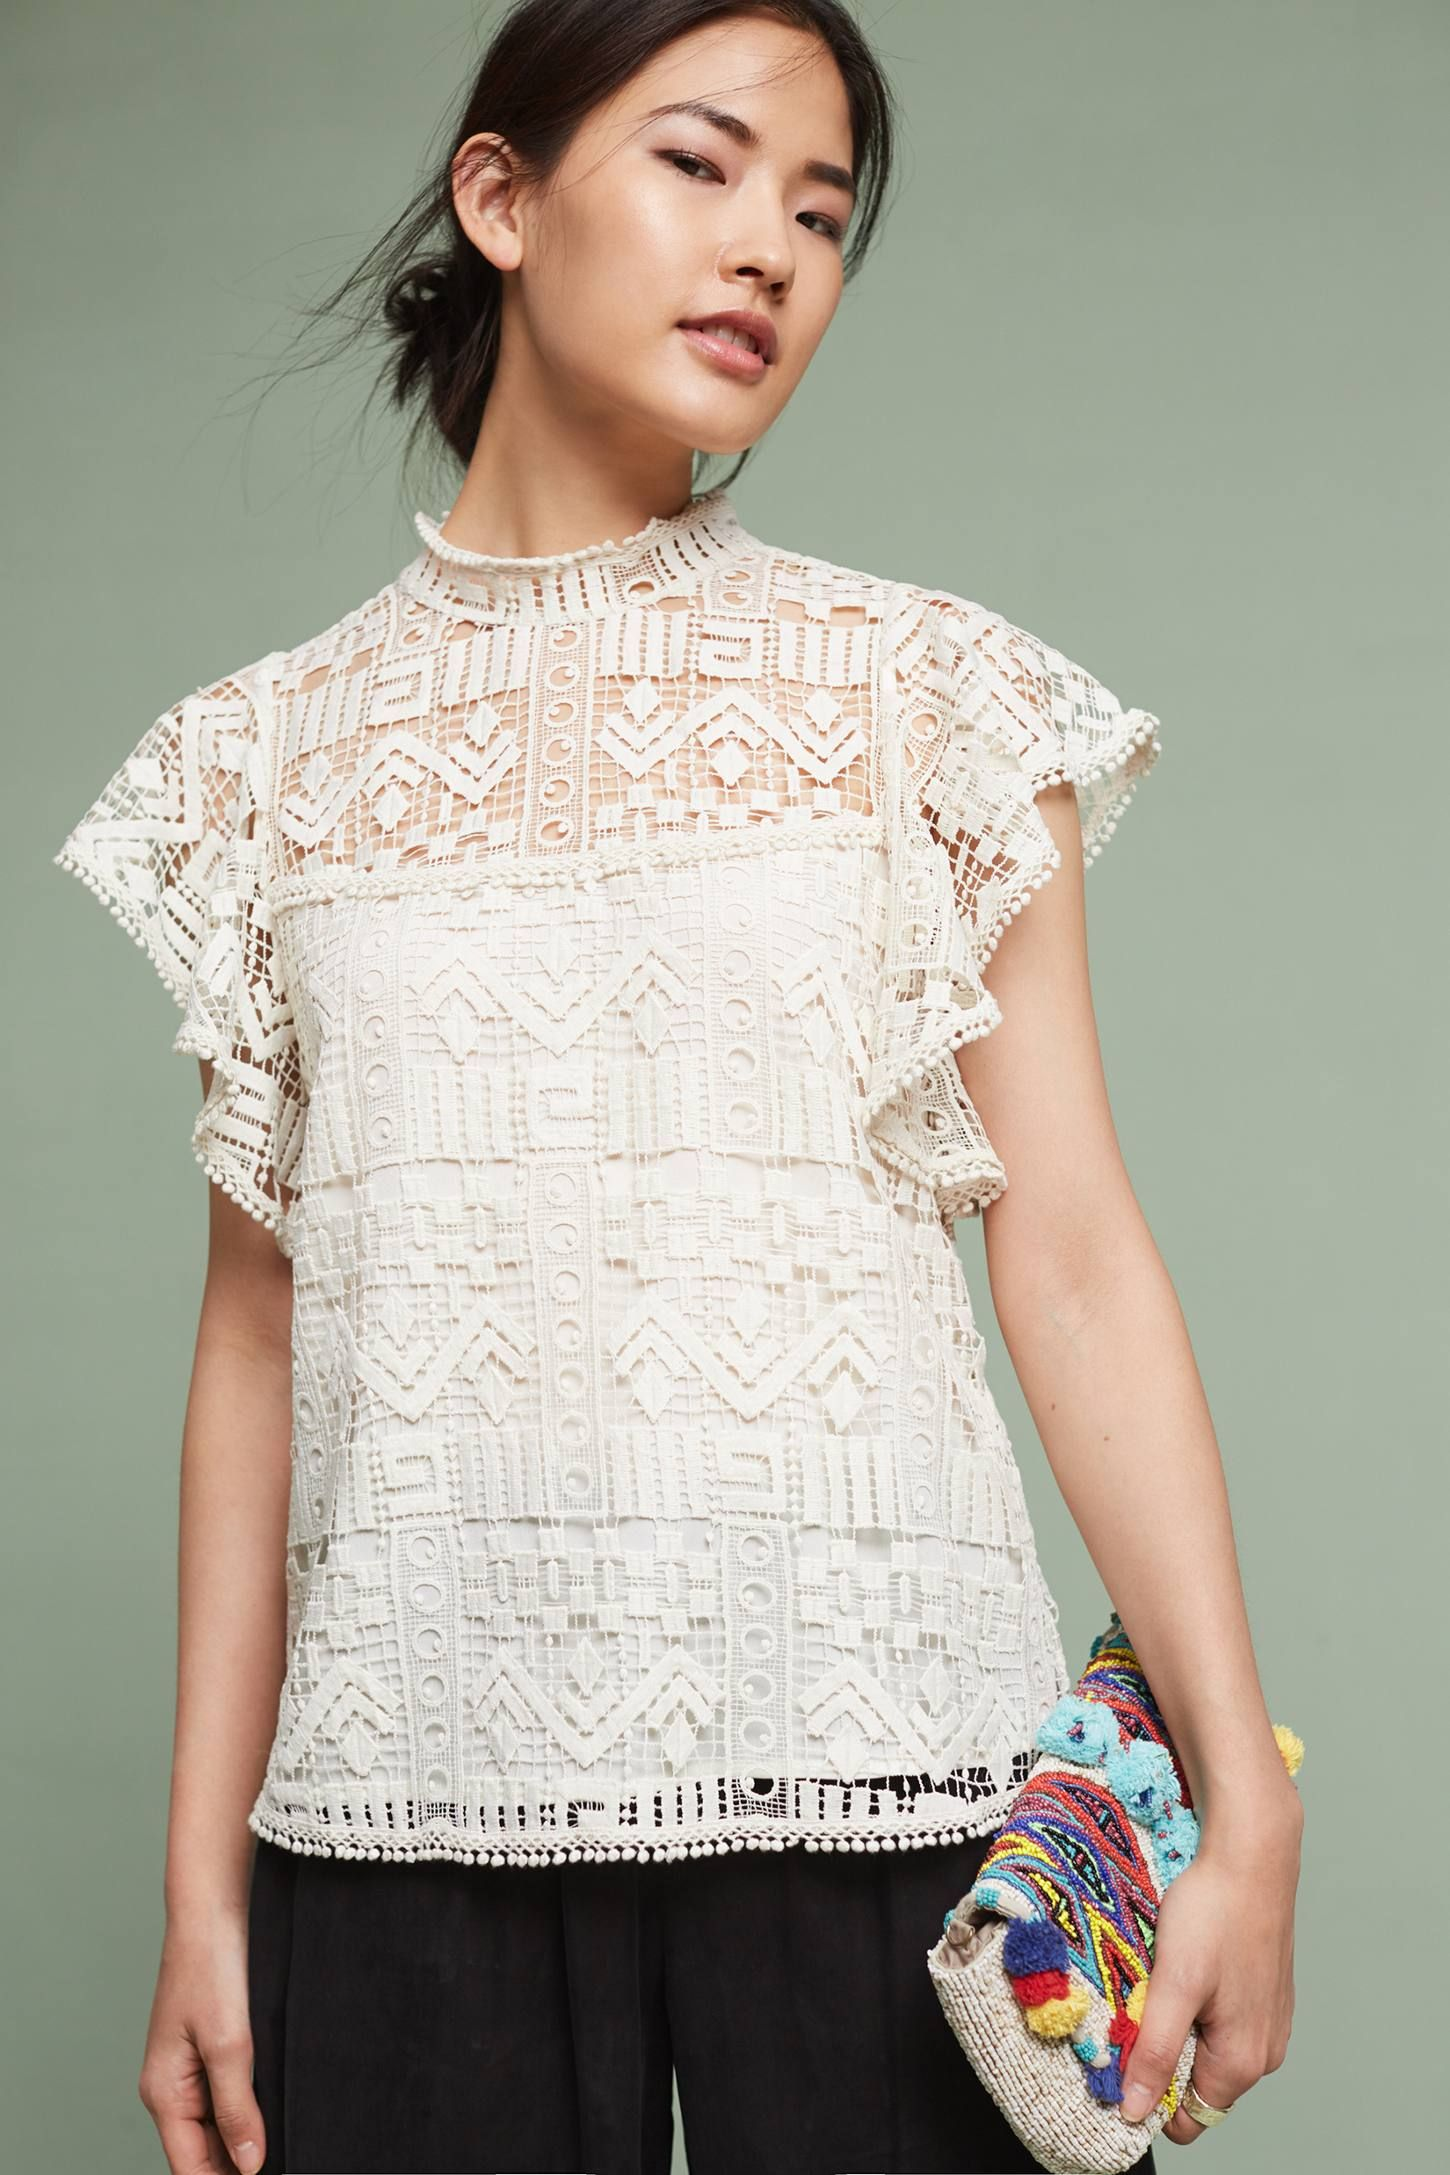 Valerie lace top pinterest anthropologie clothes and spring summer